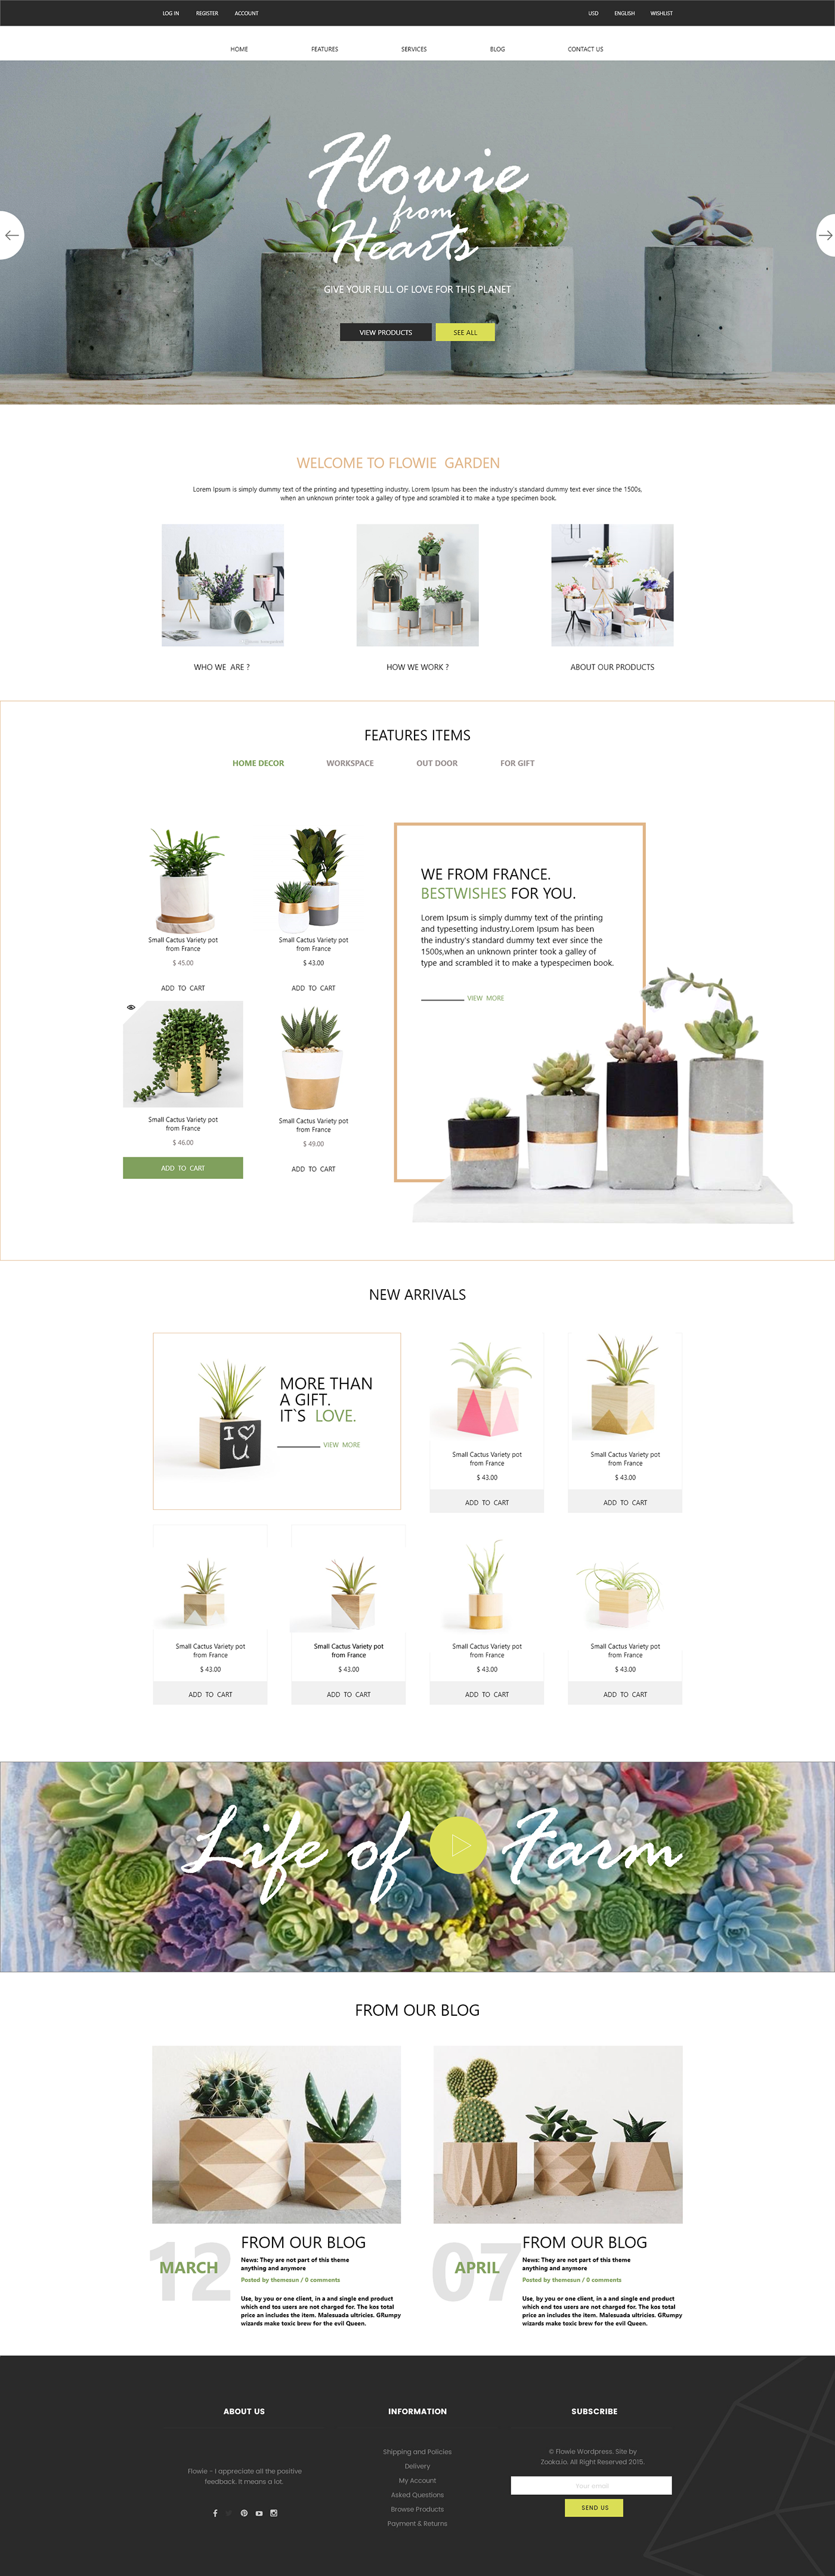 Home Decor website design